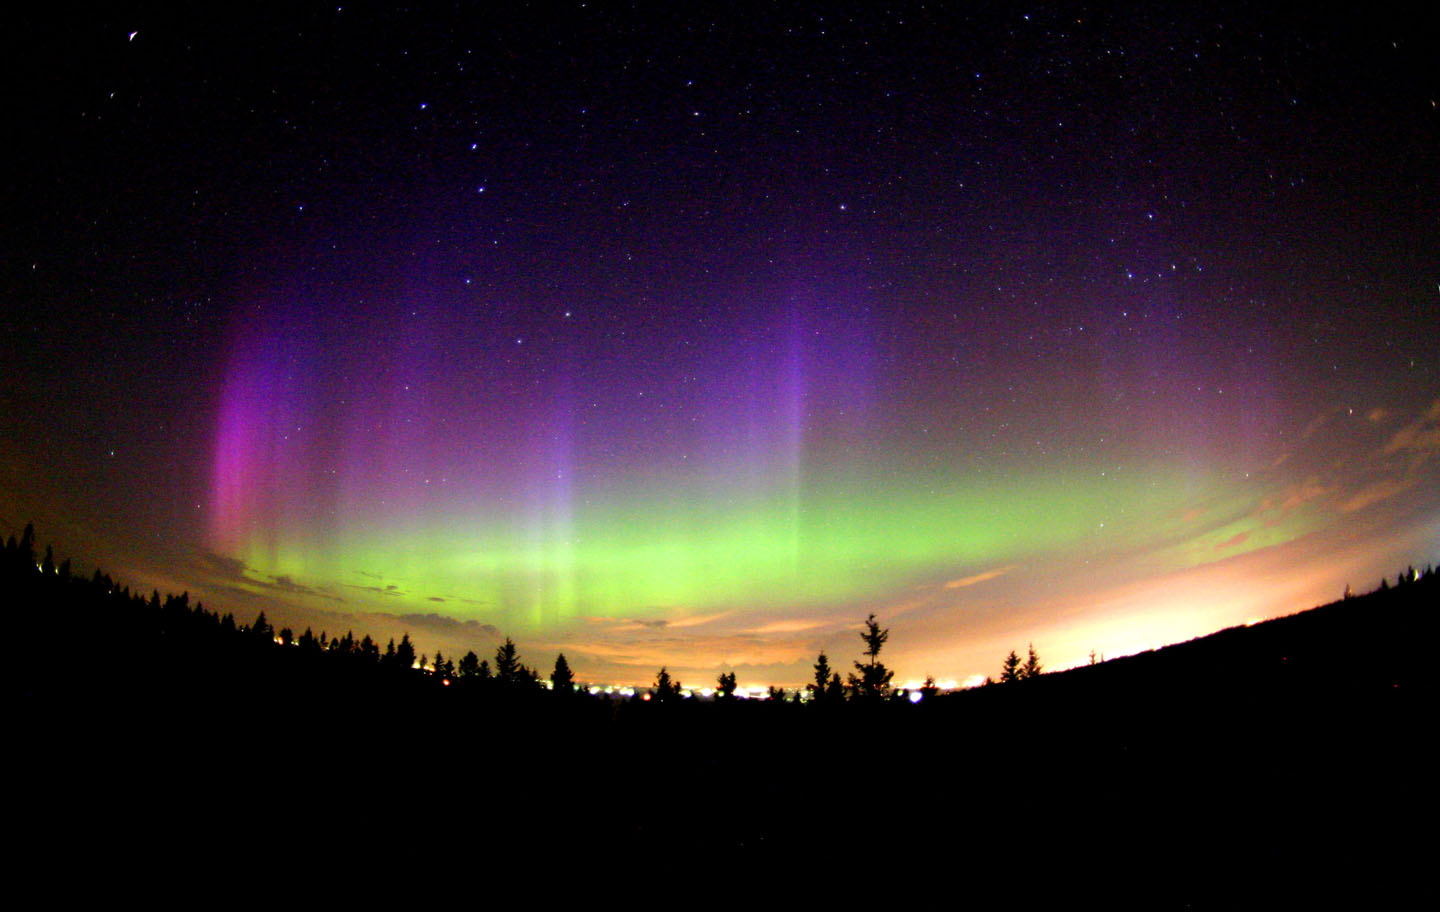 Led Manufacturer Discovers Northern Lights Actually Leds